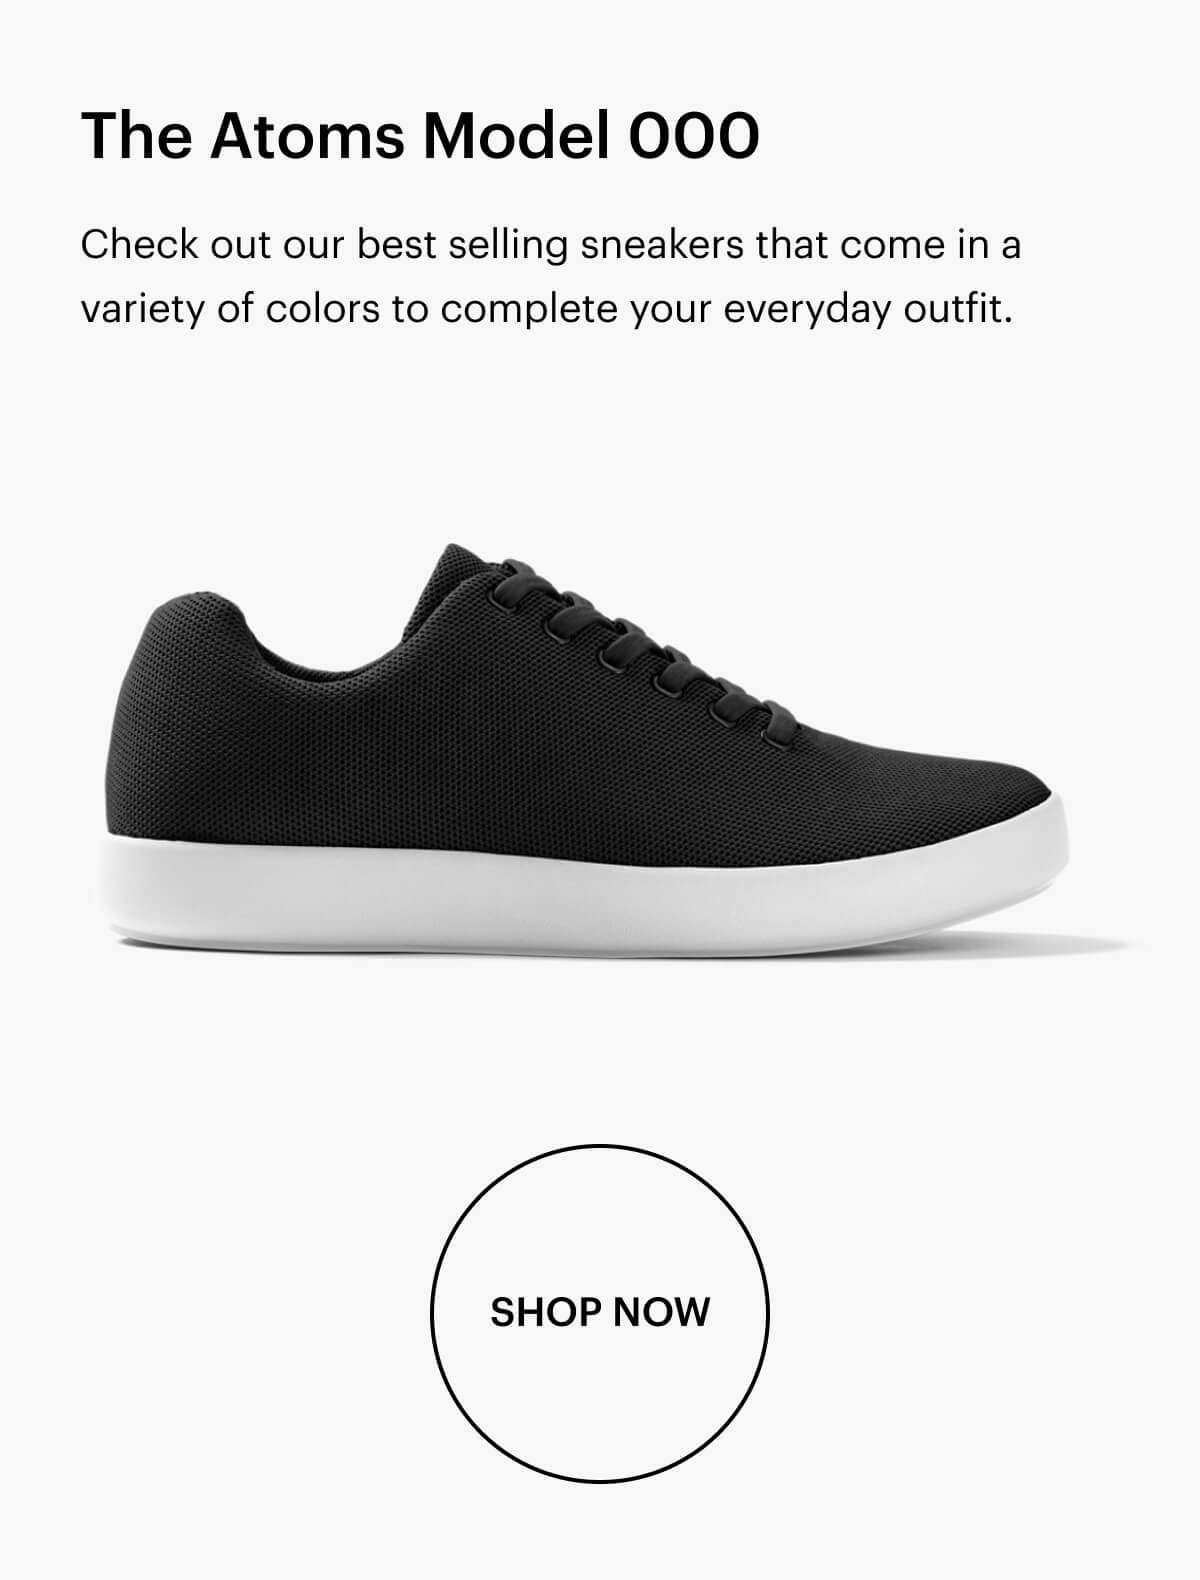 The Atoms Model 000. Check out our best selling sneakers that come in a variety of colors to complete your everyday outfit.